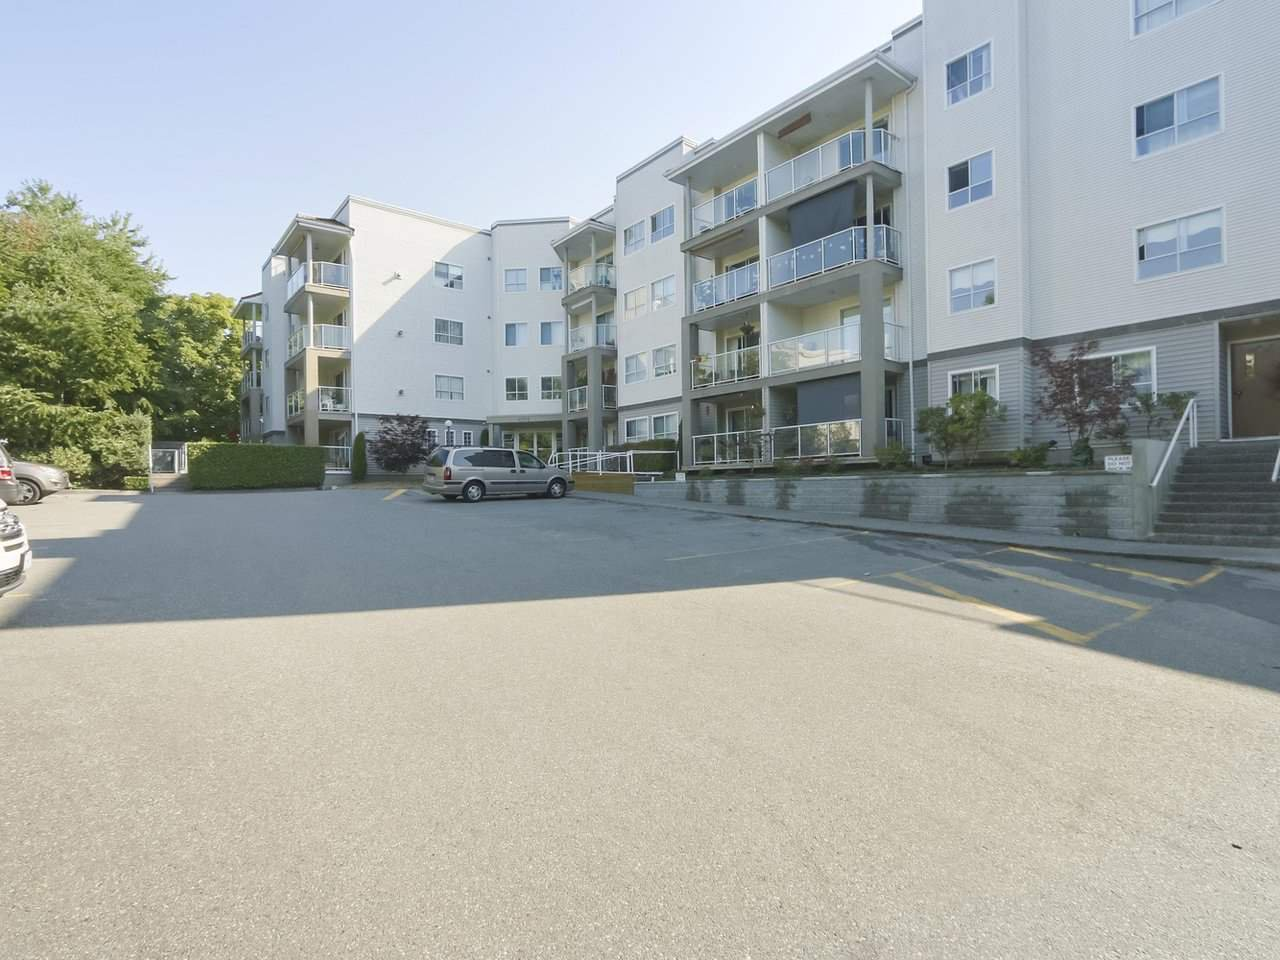 "Main Photo: 110 4758 53 Street in Delta: Delta Manor Condo for sale in ""SUNNINGDALE"" (Ladner)  : MLS®# R2394915"